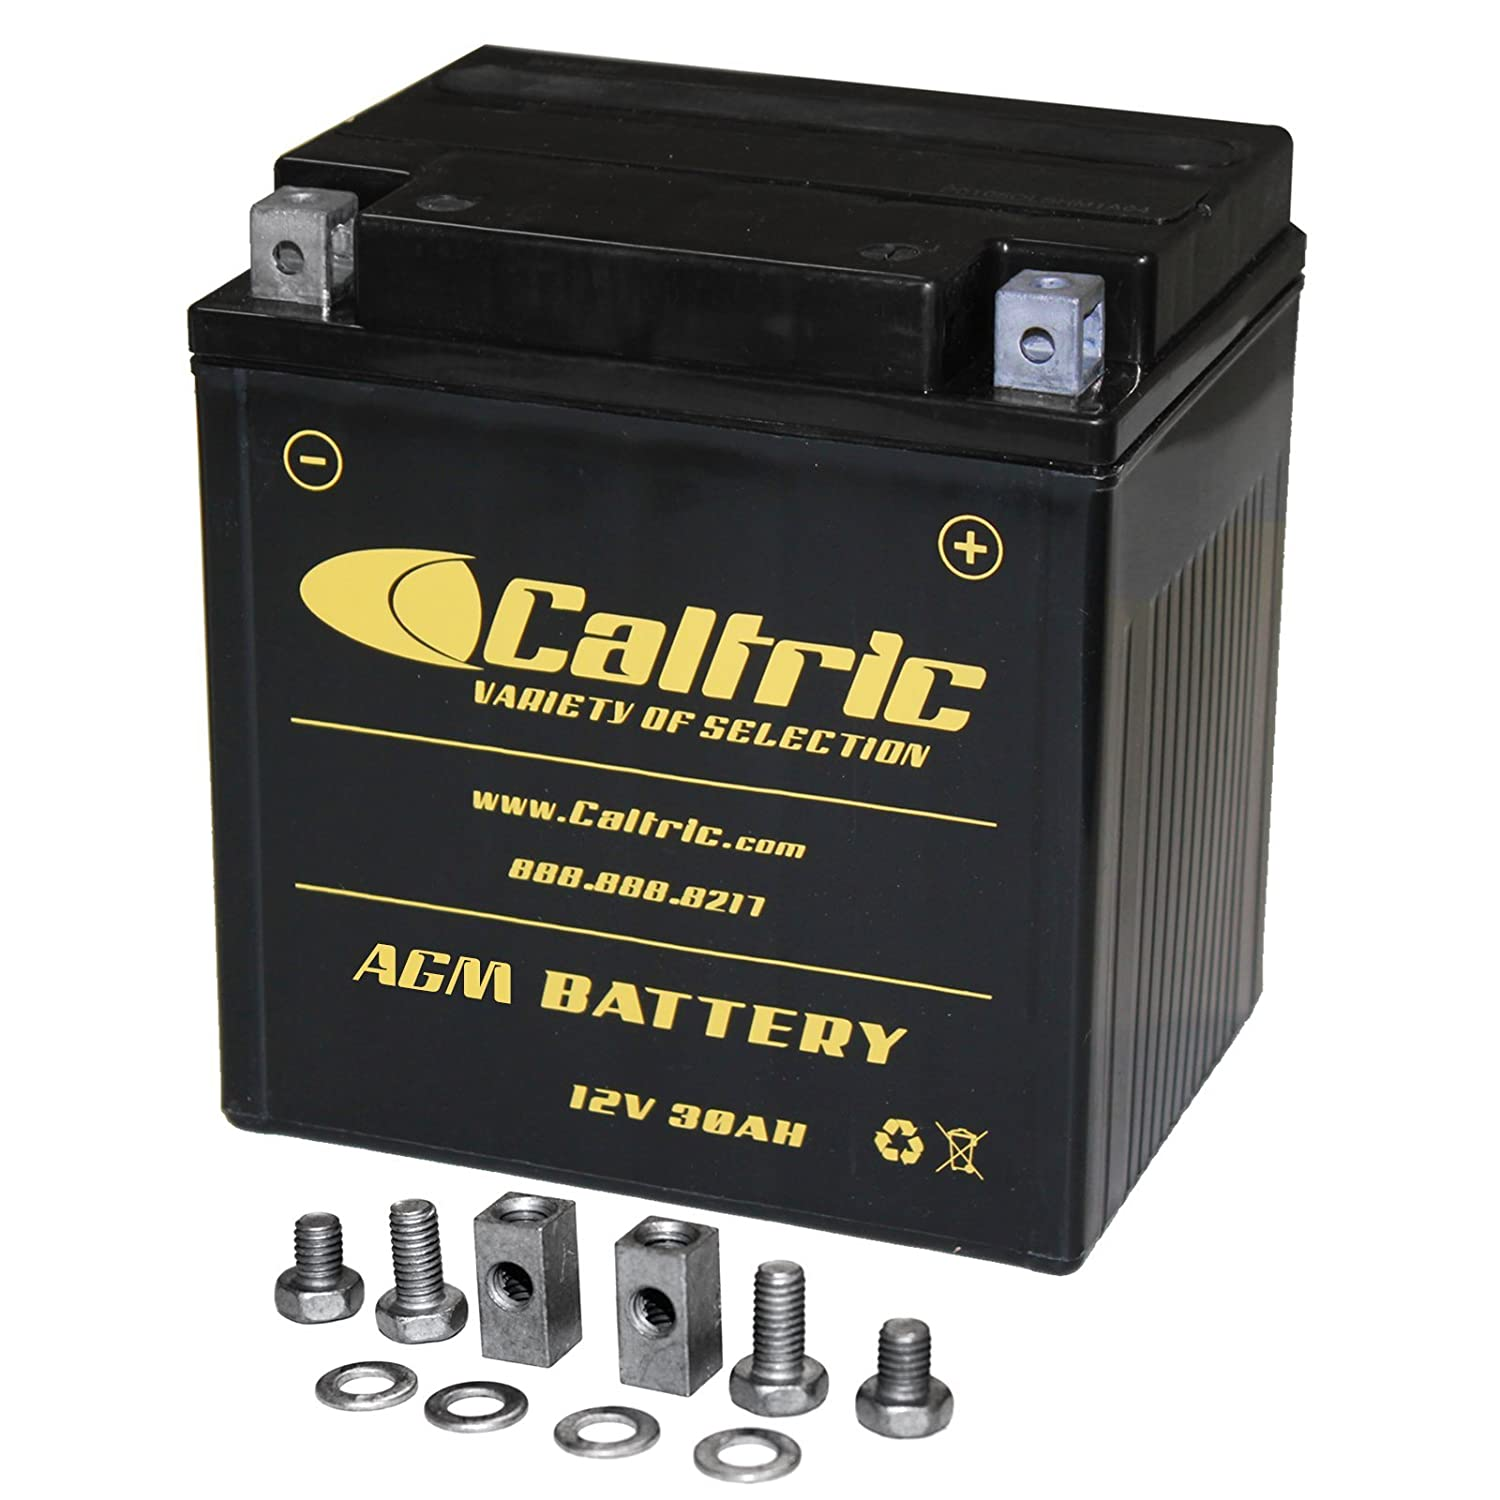 CALTRIC AGM BATTERY Fits POLARIS SPORTSMAN 700 4X4 2002-2006